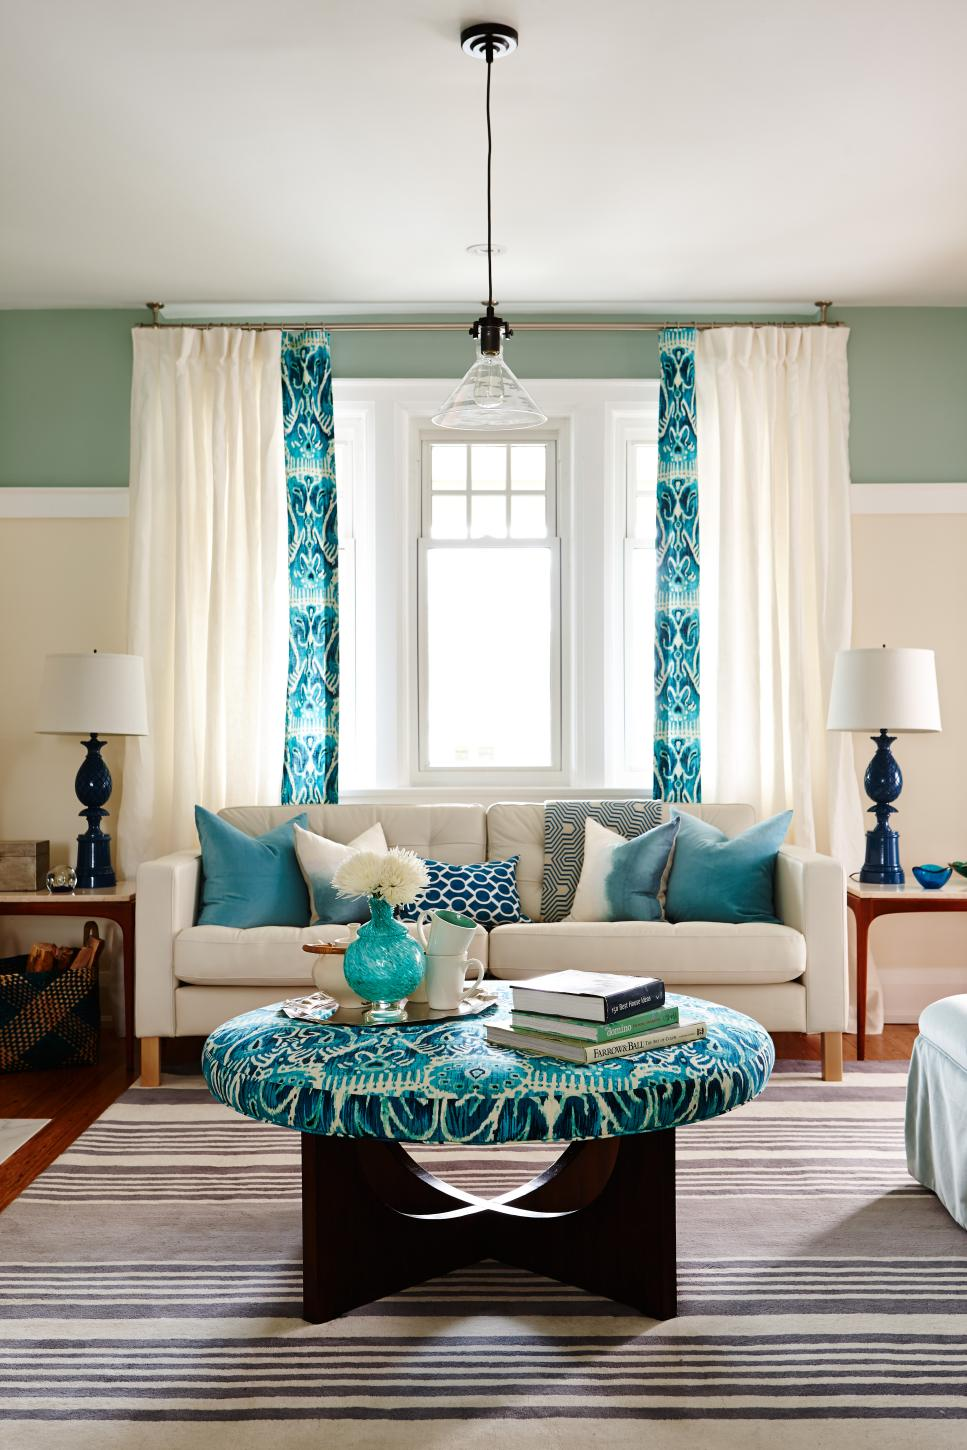 Living Room Ideas 38 Decorating Tips To Improve The Earance Of Your Area Hawk Haven